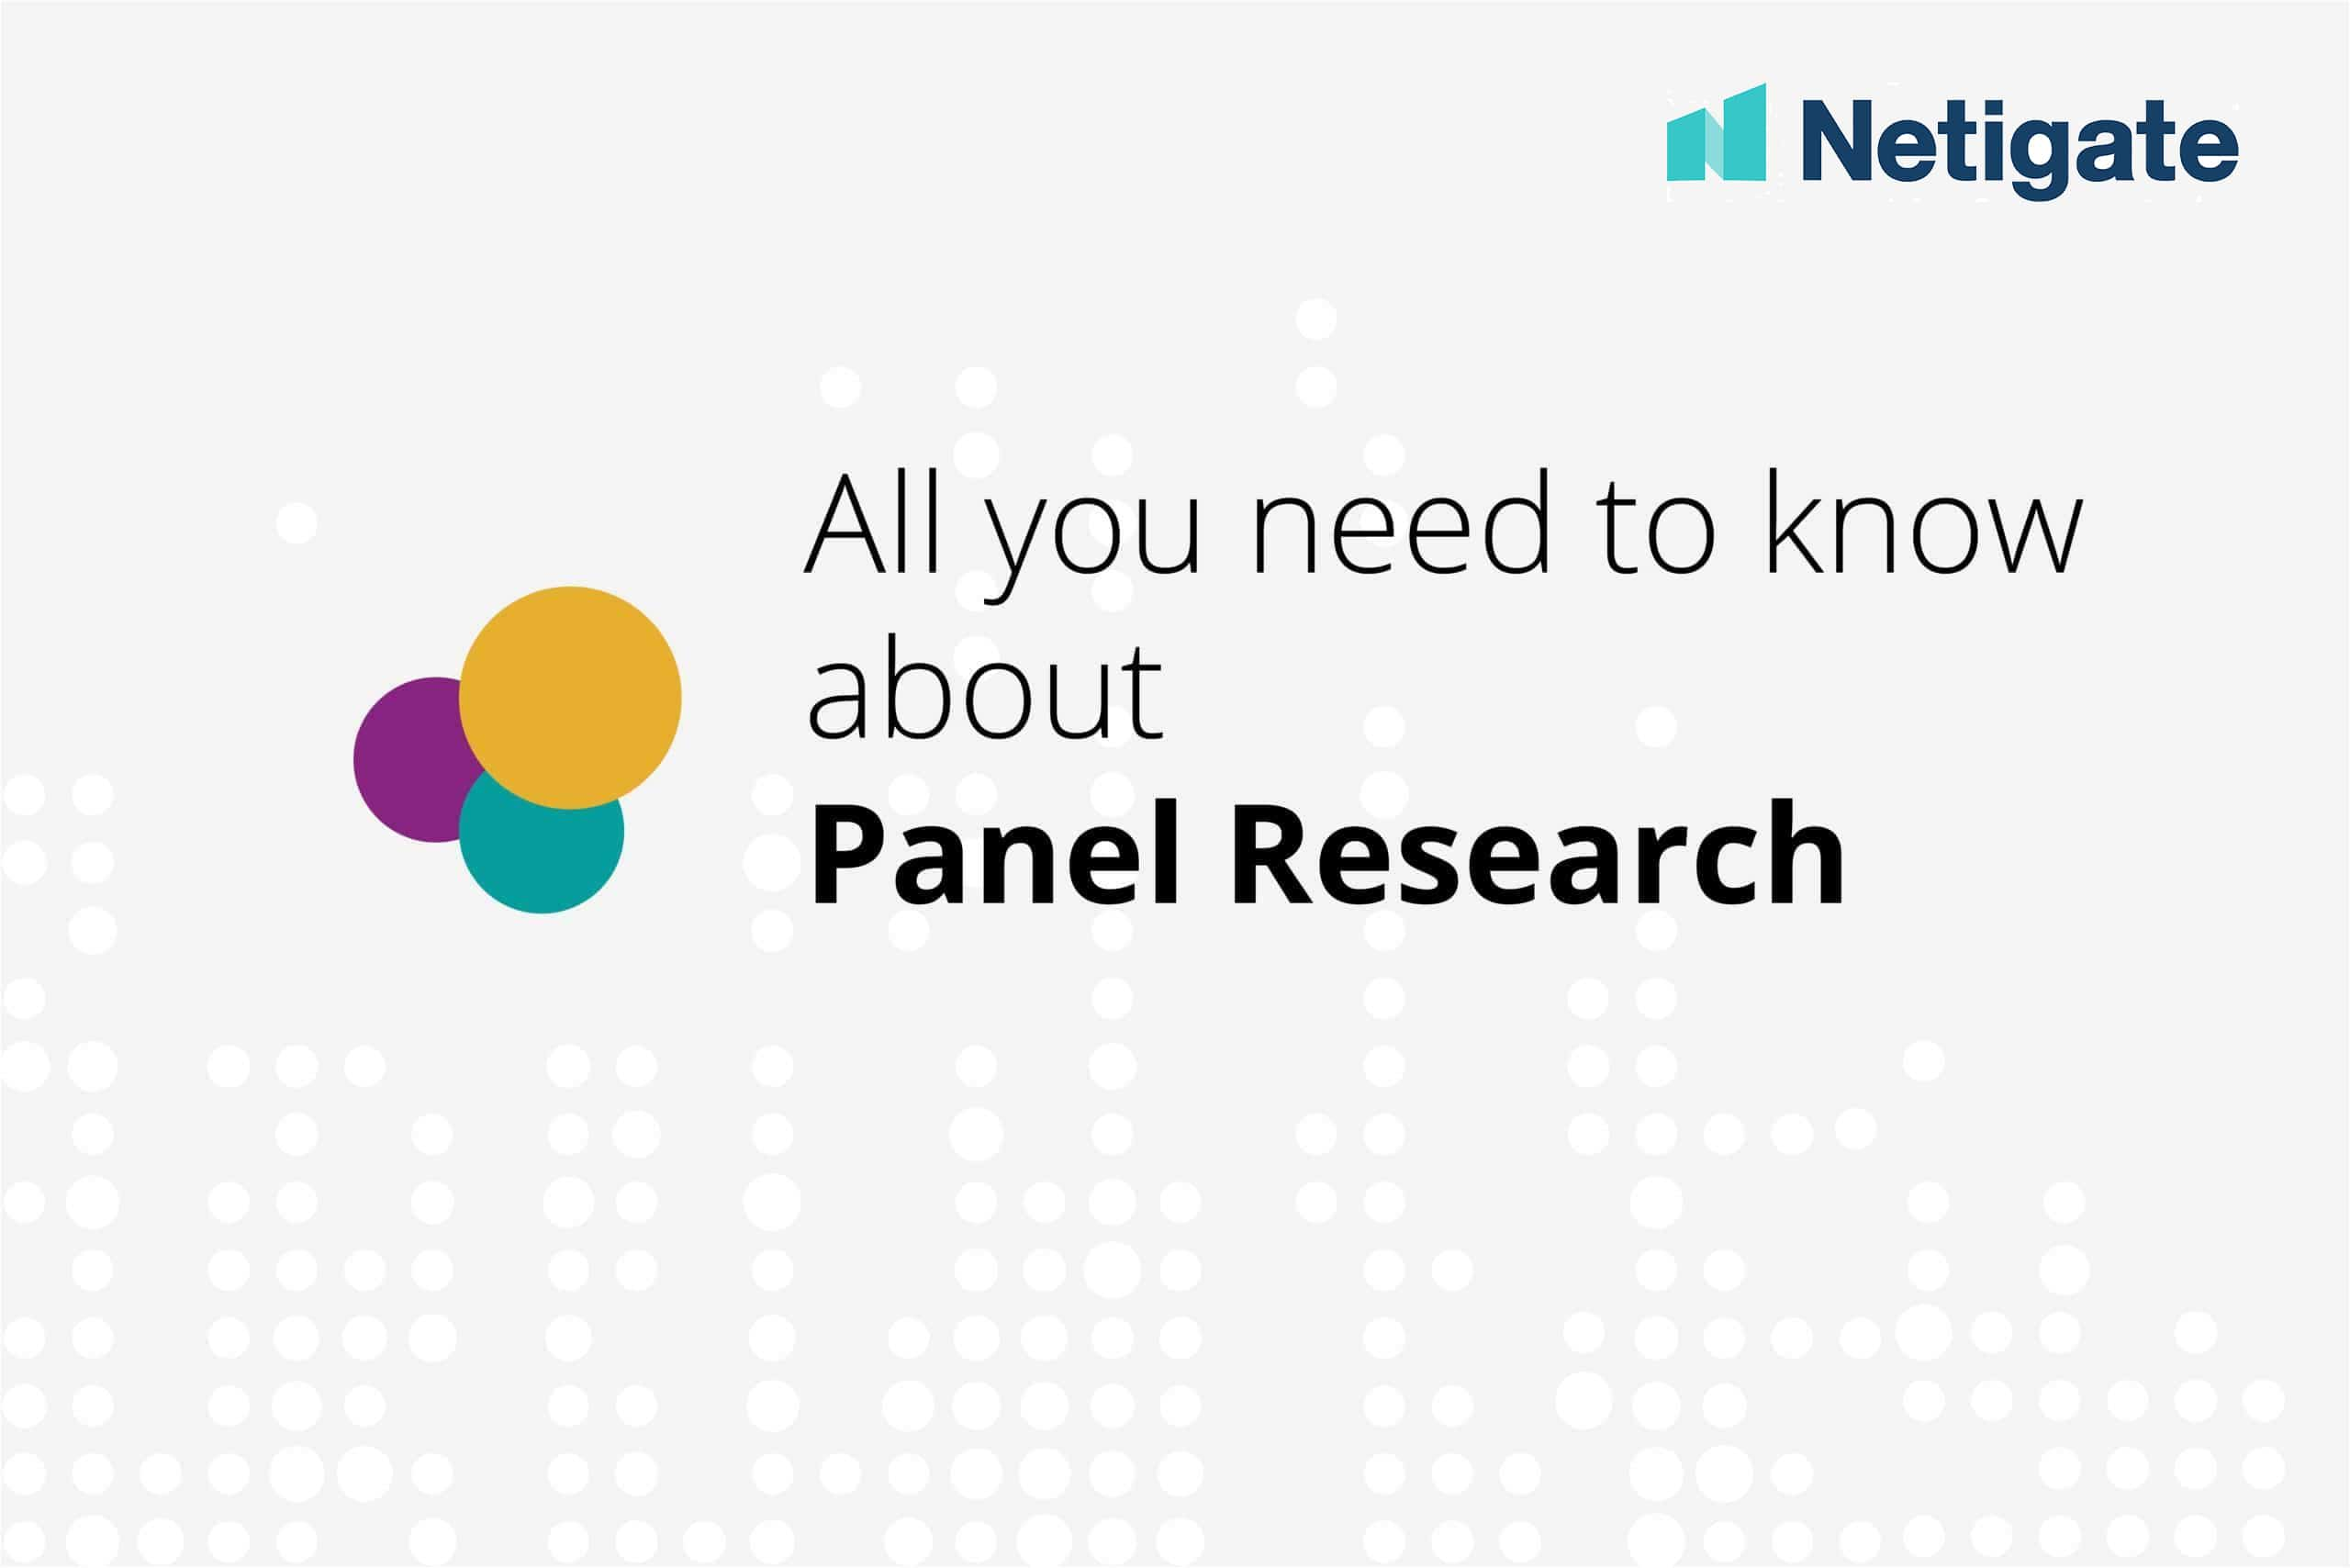 Your guide to panel research – what you need to know